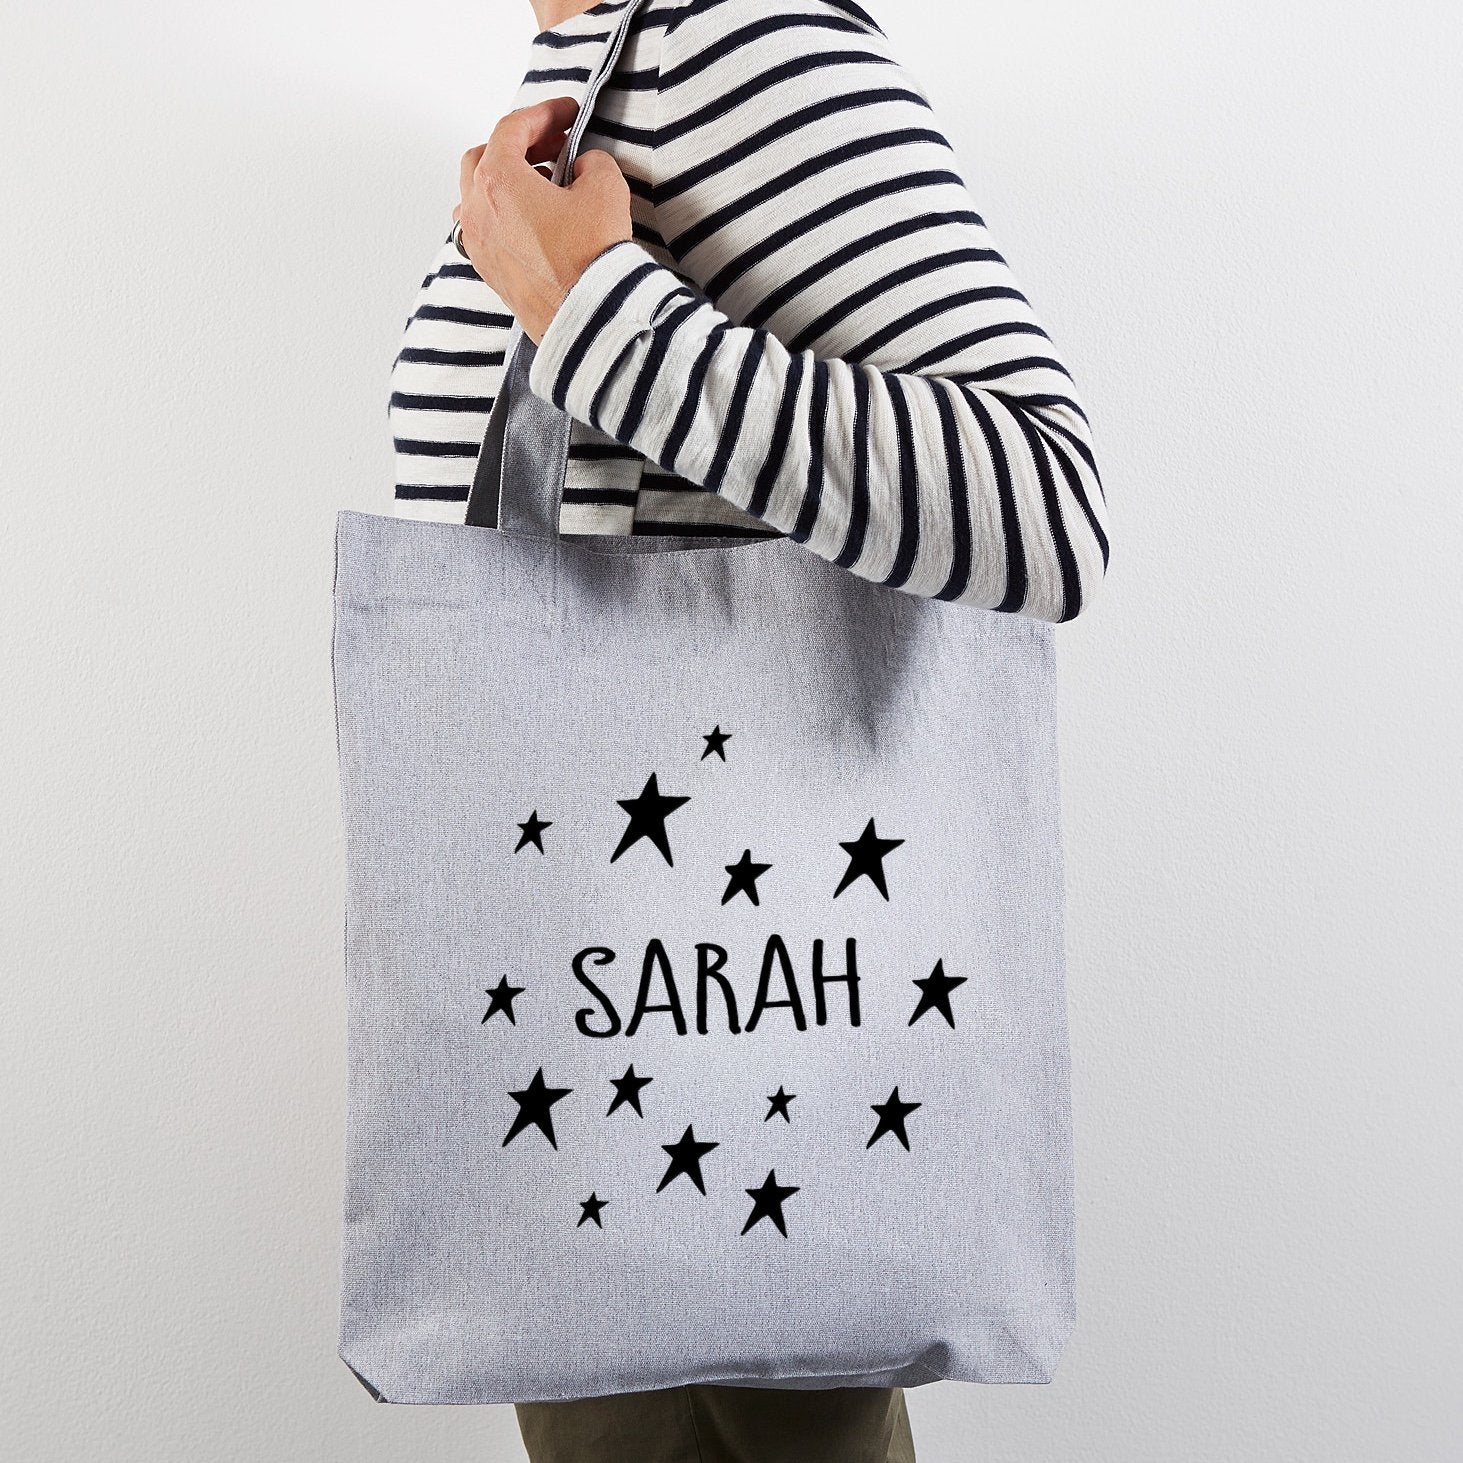 Personalised tote shopper bag